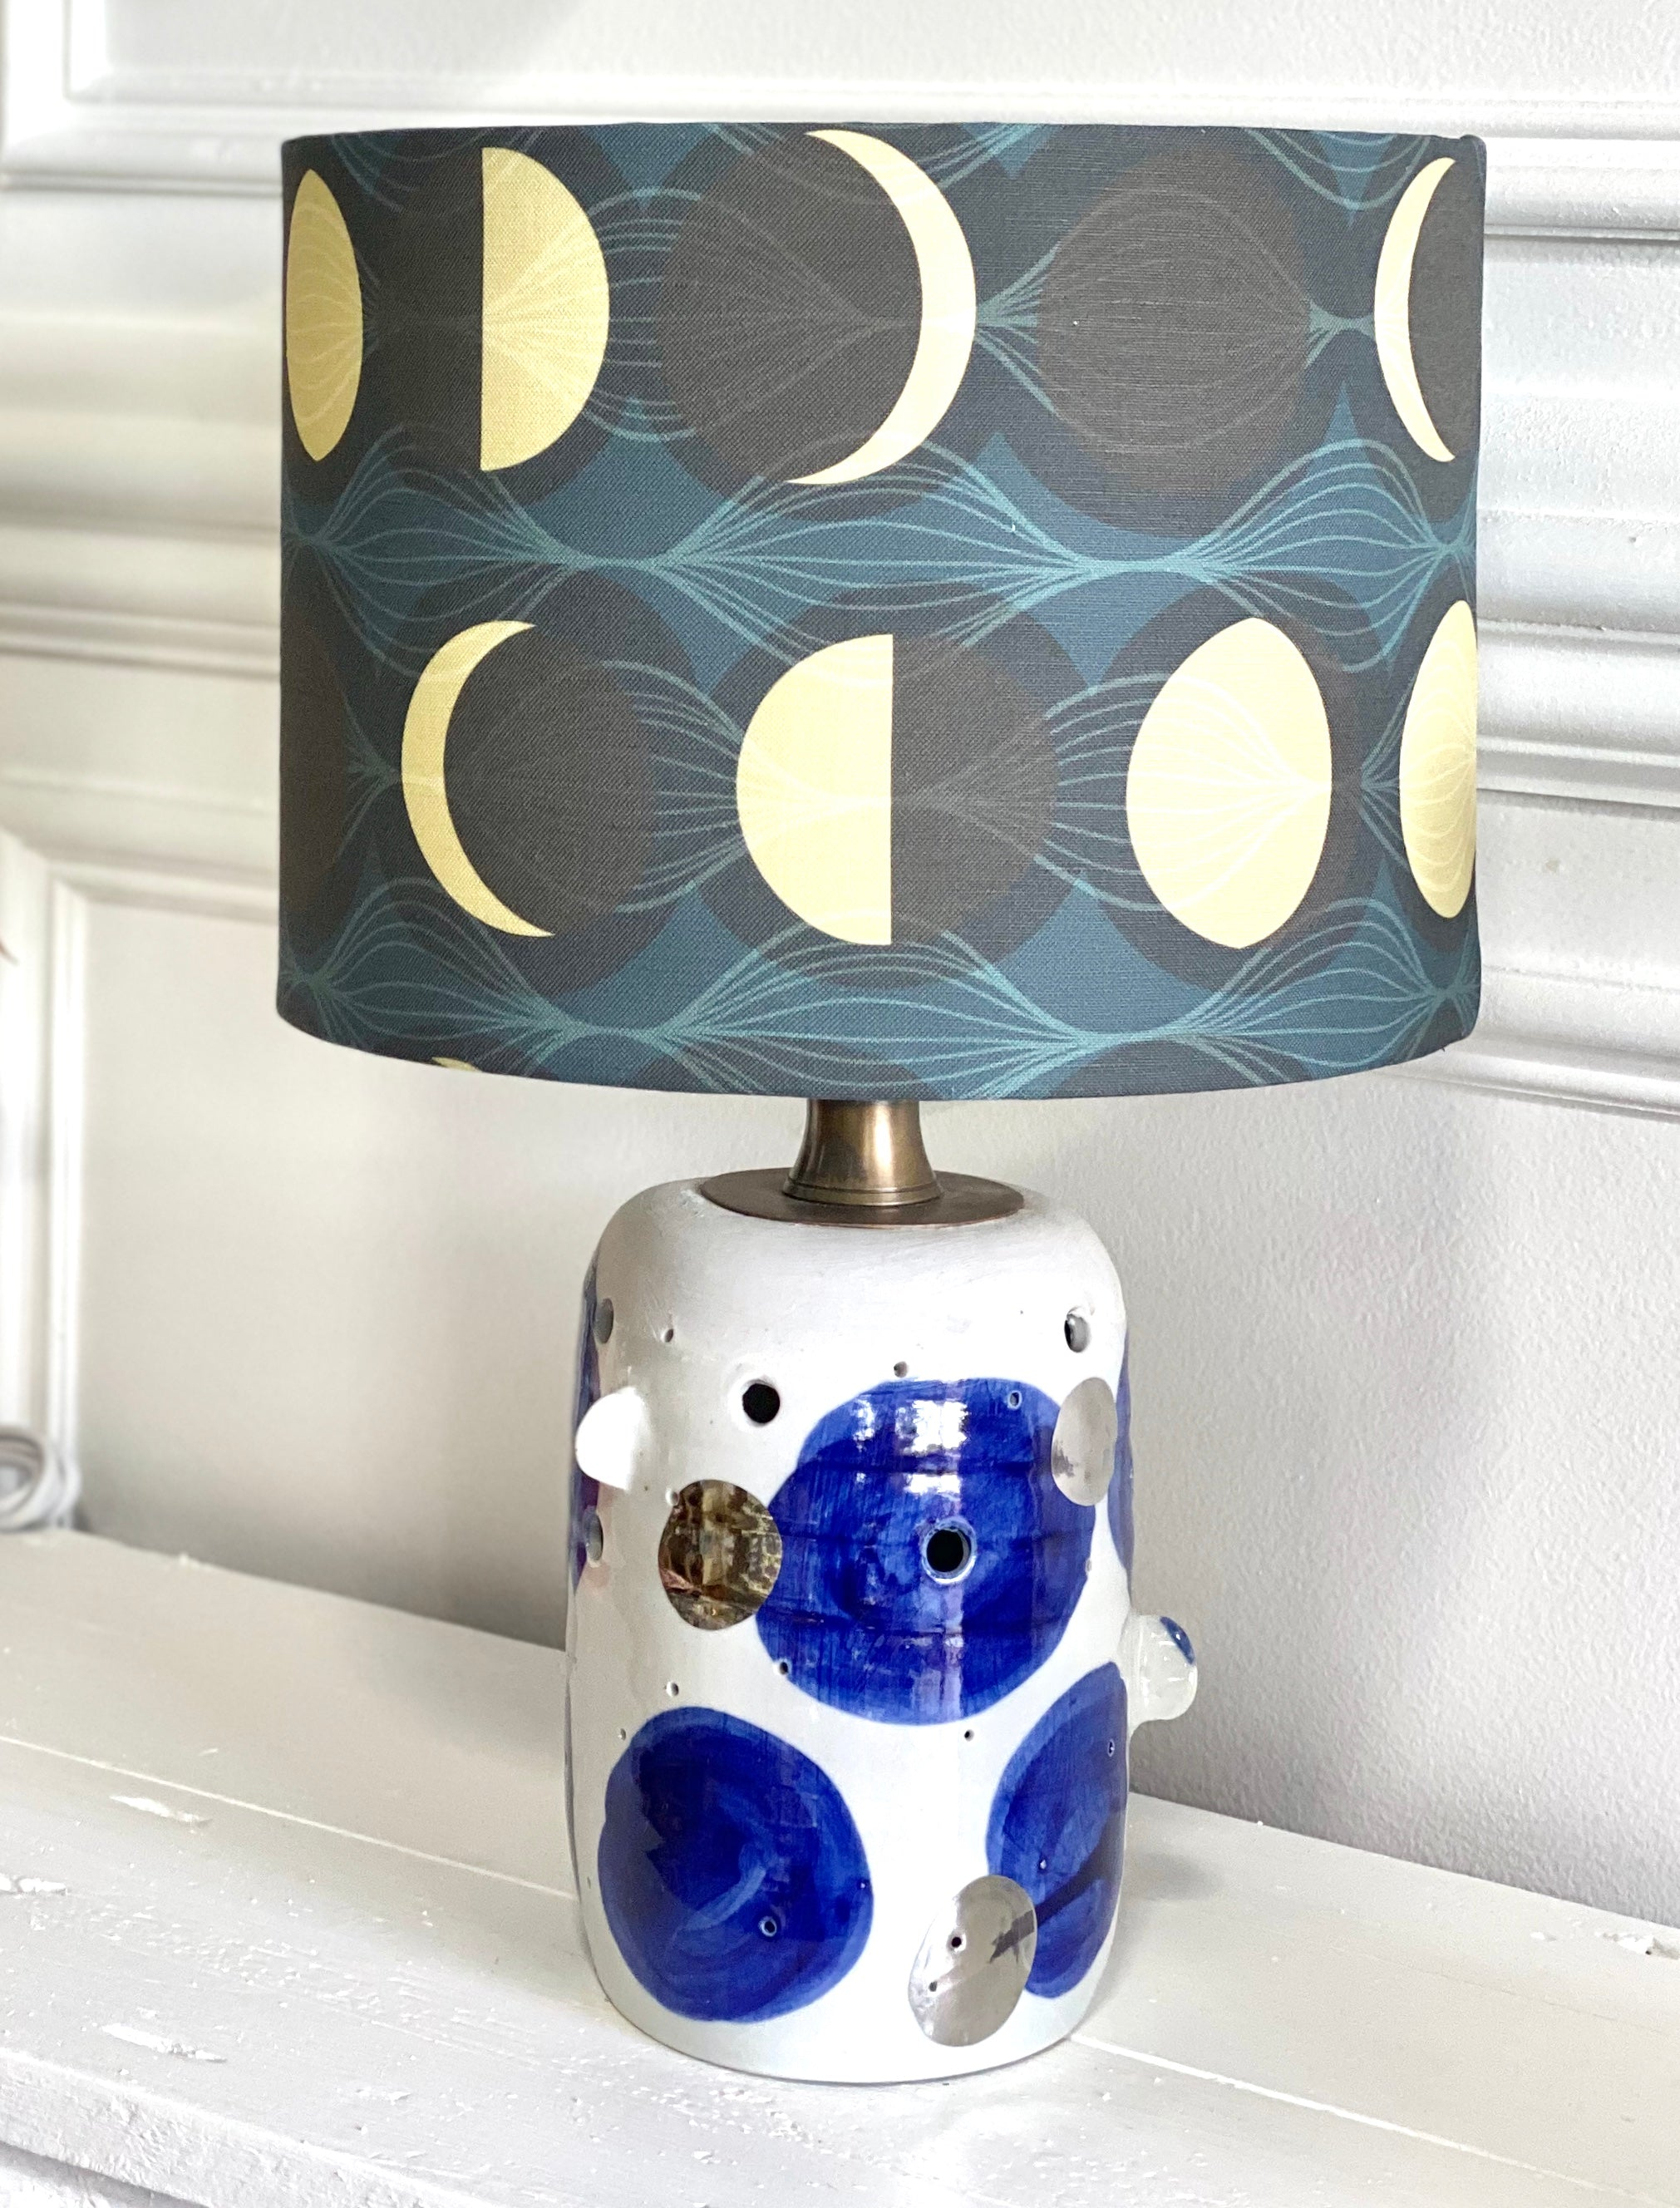 Scout Lamp with base by Bridget Bodenham